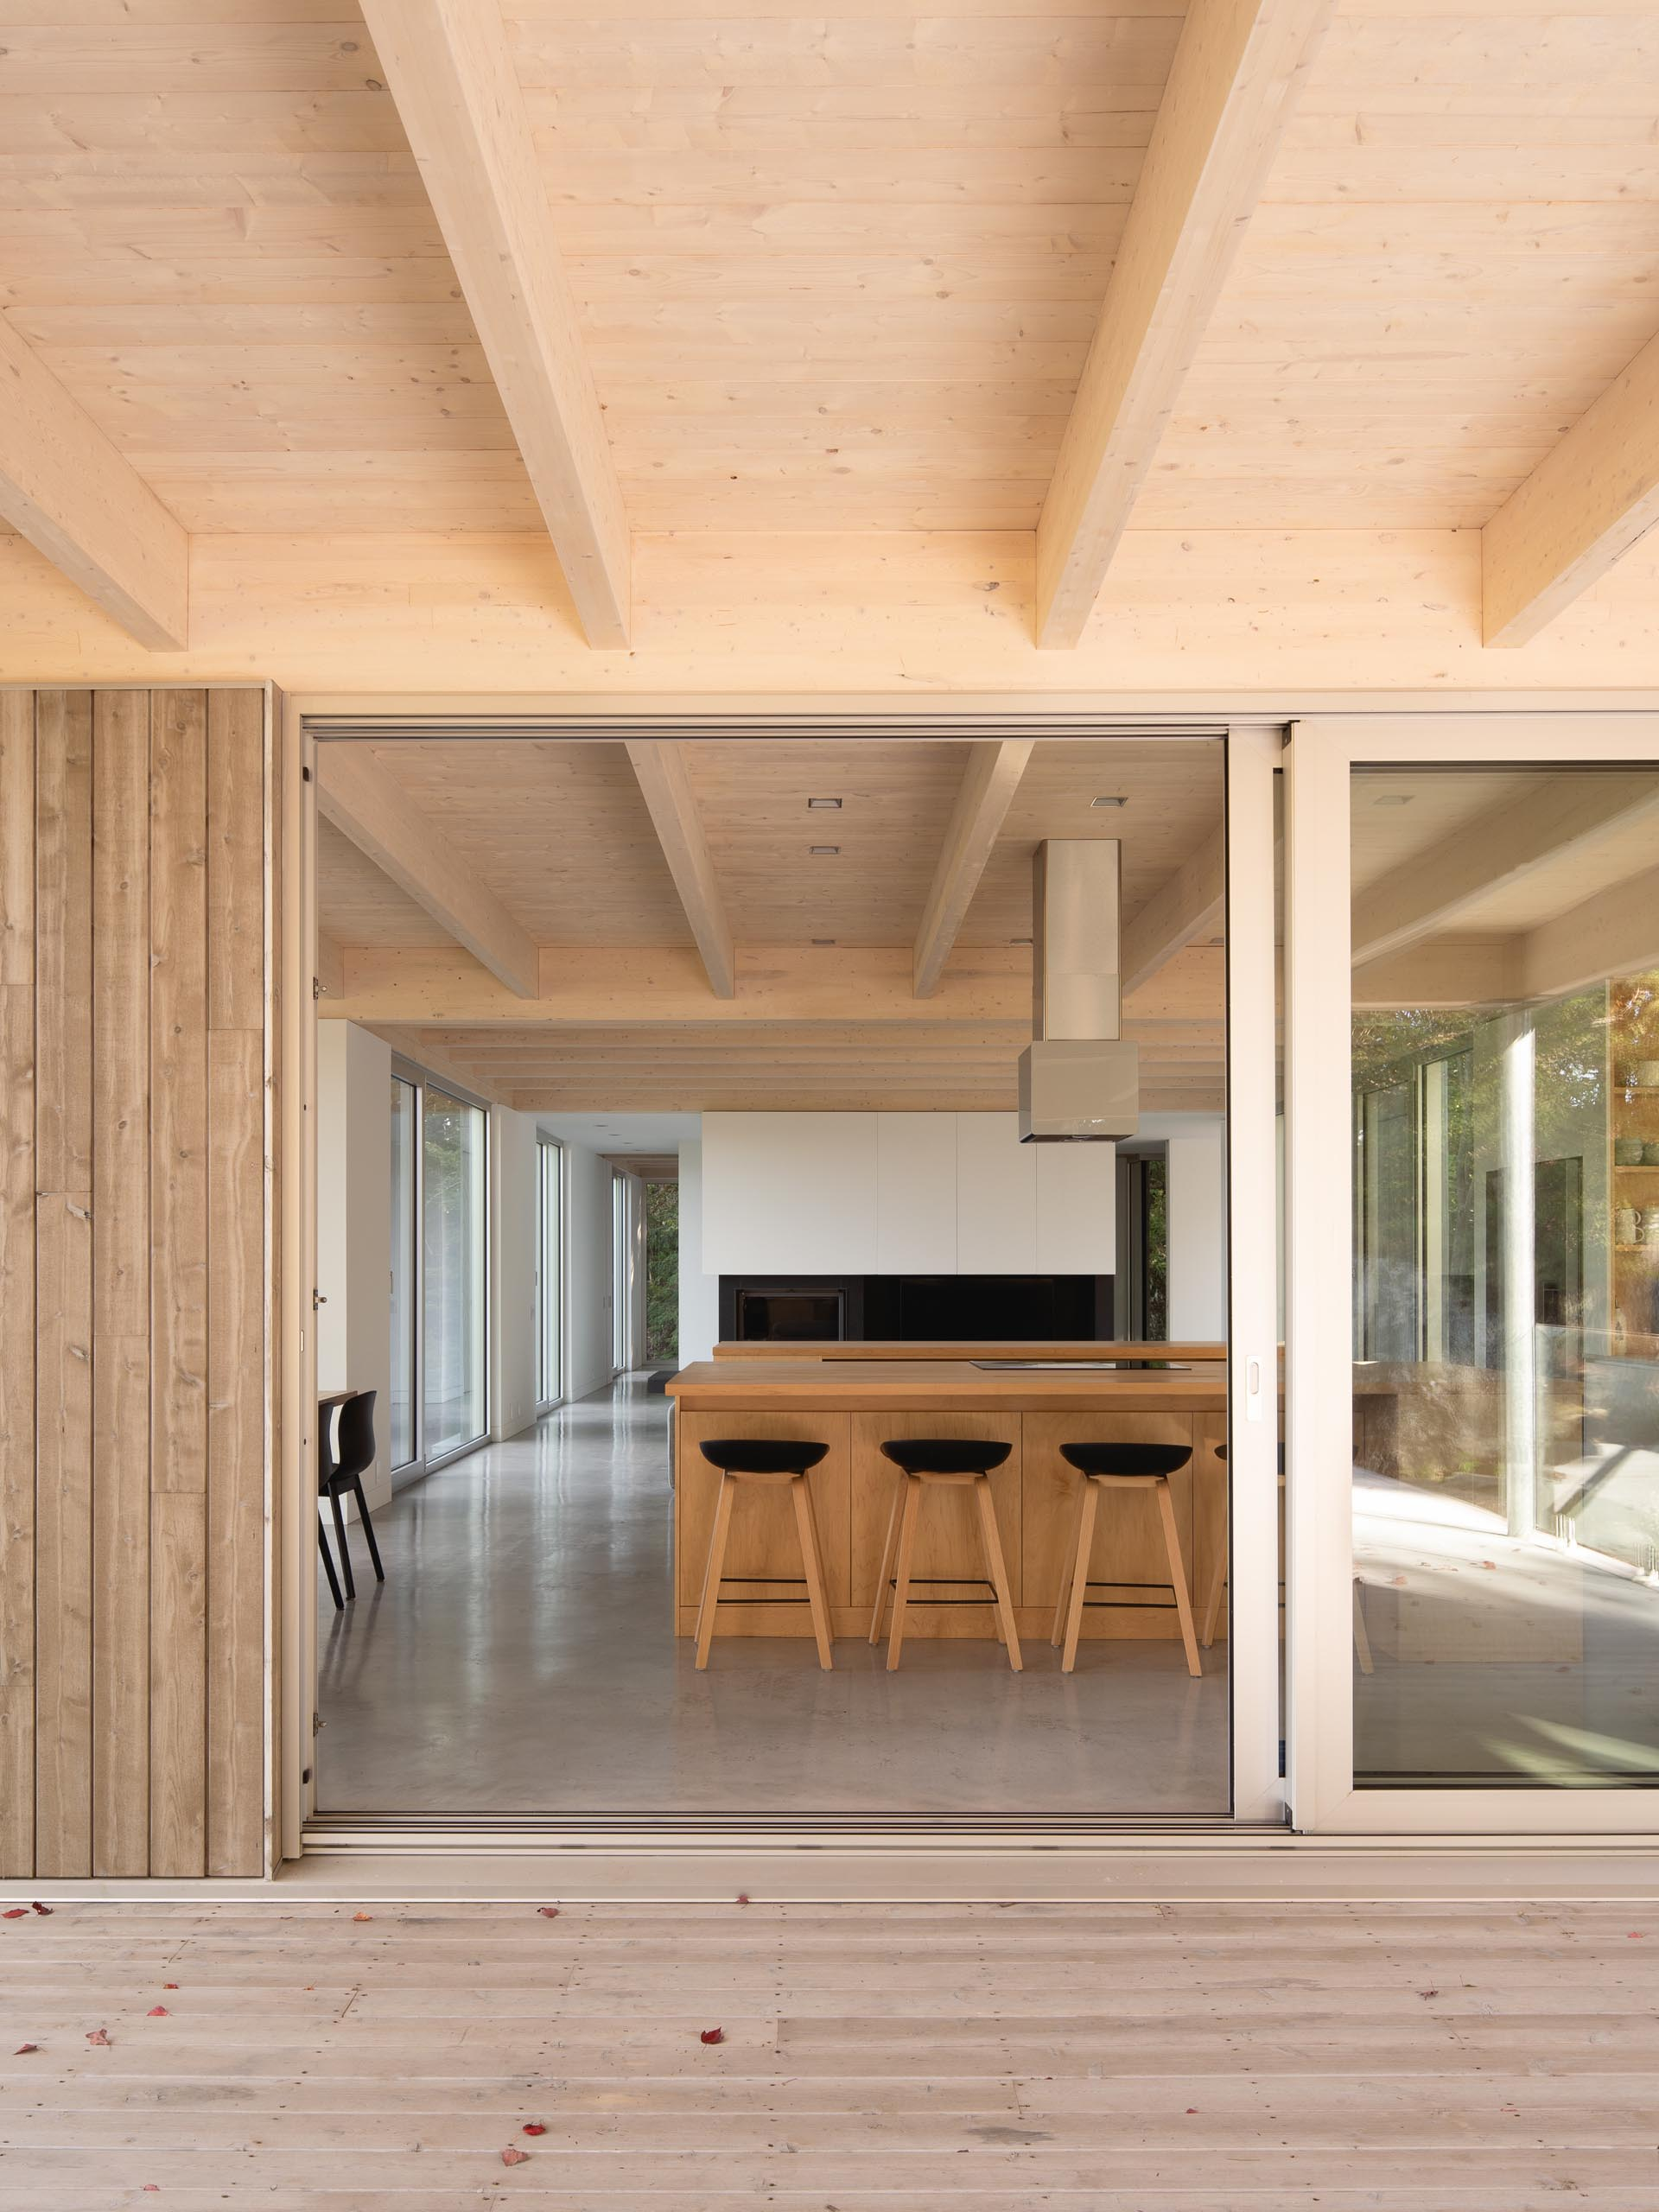 A large sliding door opens the interior spaces of this modern home to a partially covered terrace.